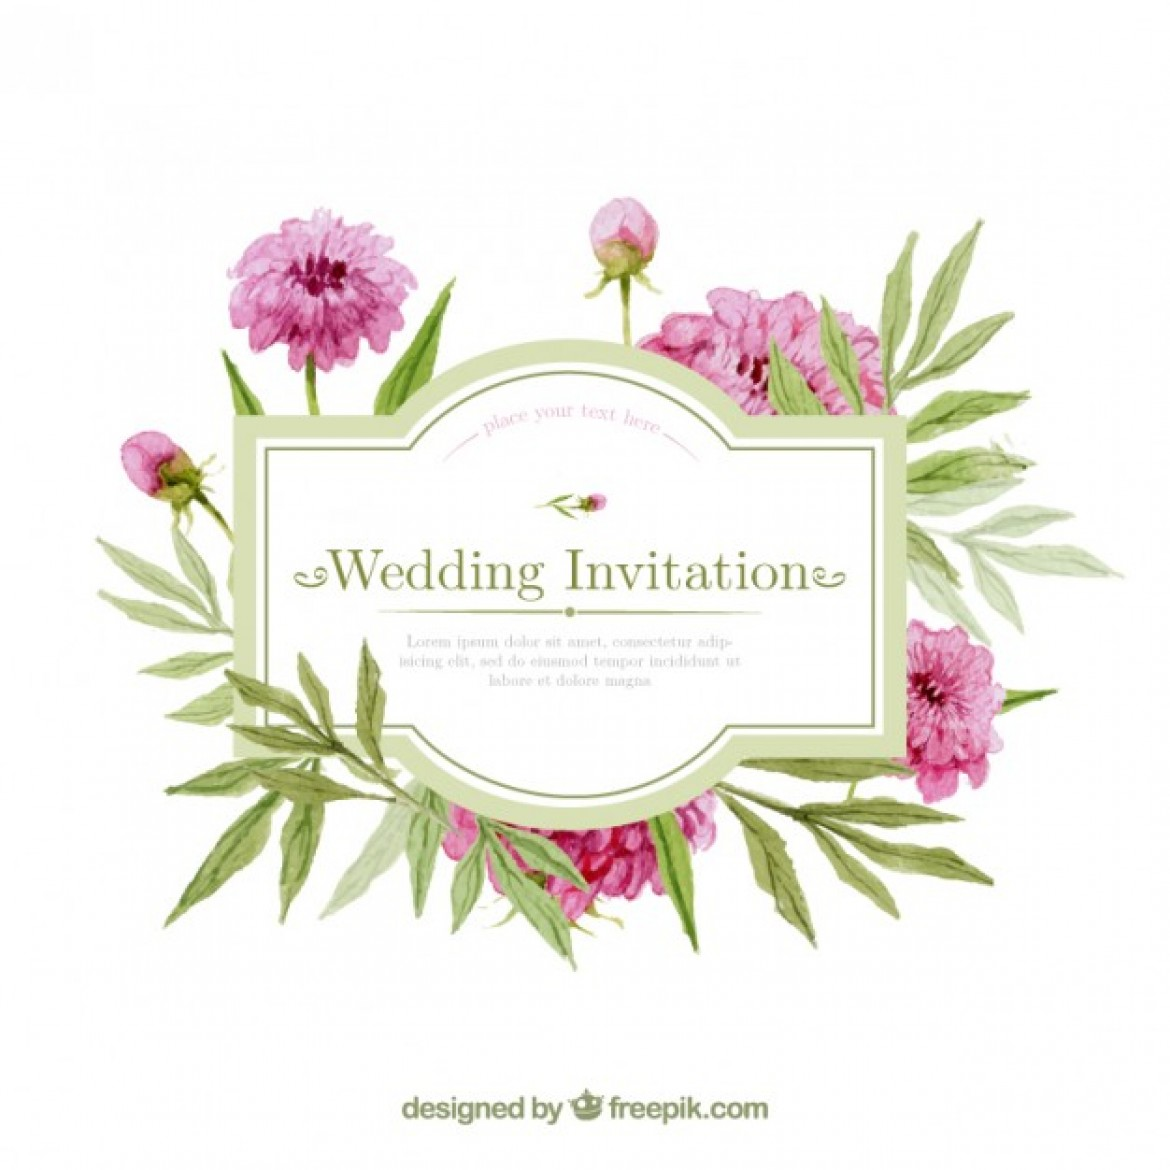 Free Printable Wedding Invitation Templates For Word: Wedding ...